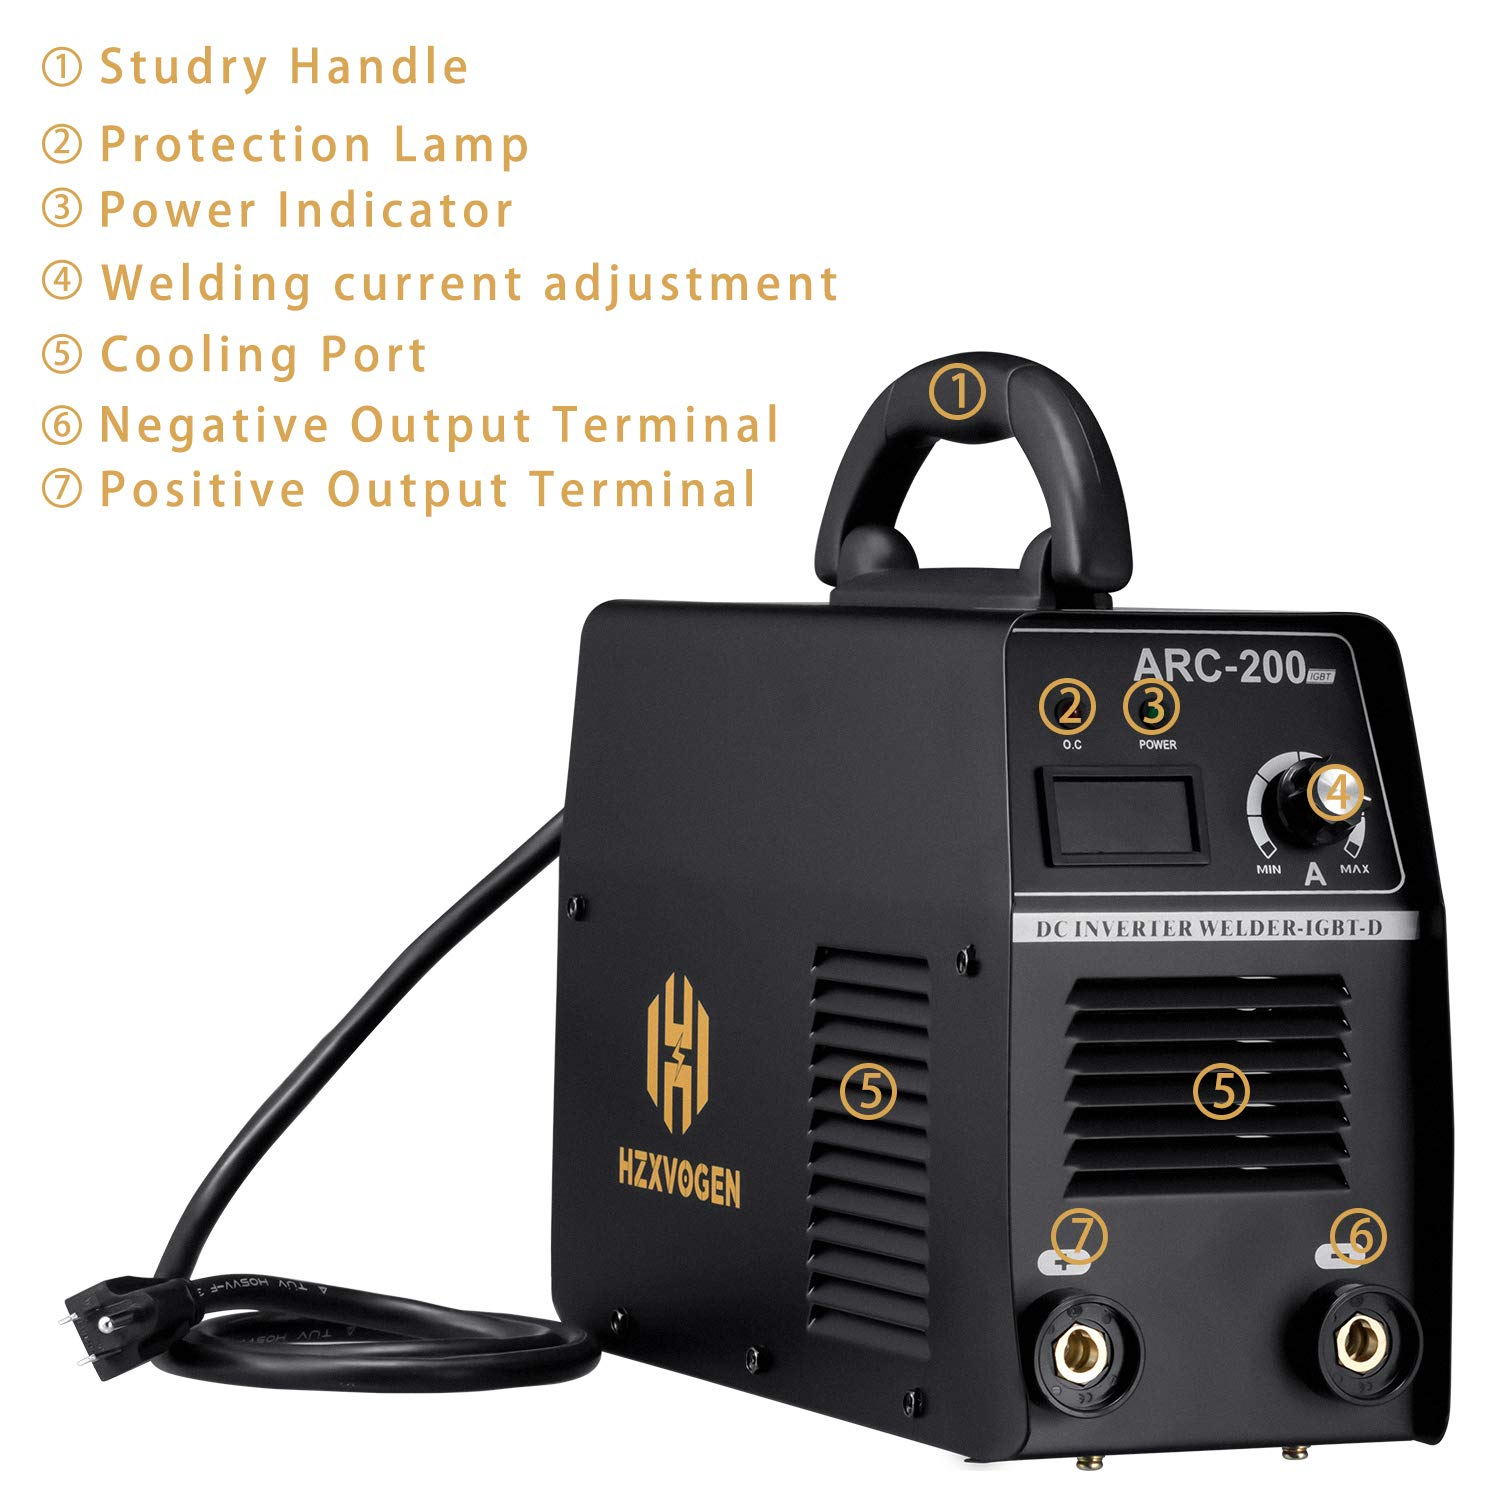 HZXVOGEN Arc Stick Welder IGBT DC Inverter MMA Arc 200A 220V ZX7 Rod Stick Mini Portable Welding Machine With Earth Clamp Electrode (ARC200)